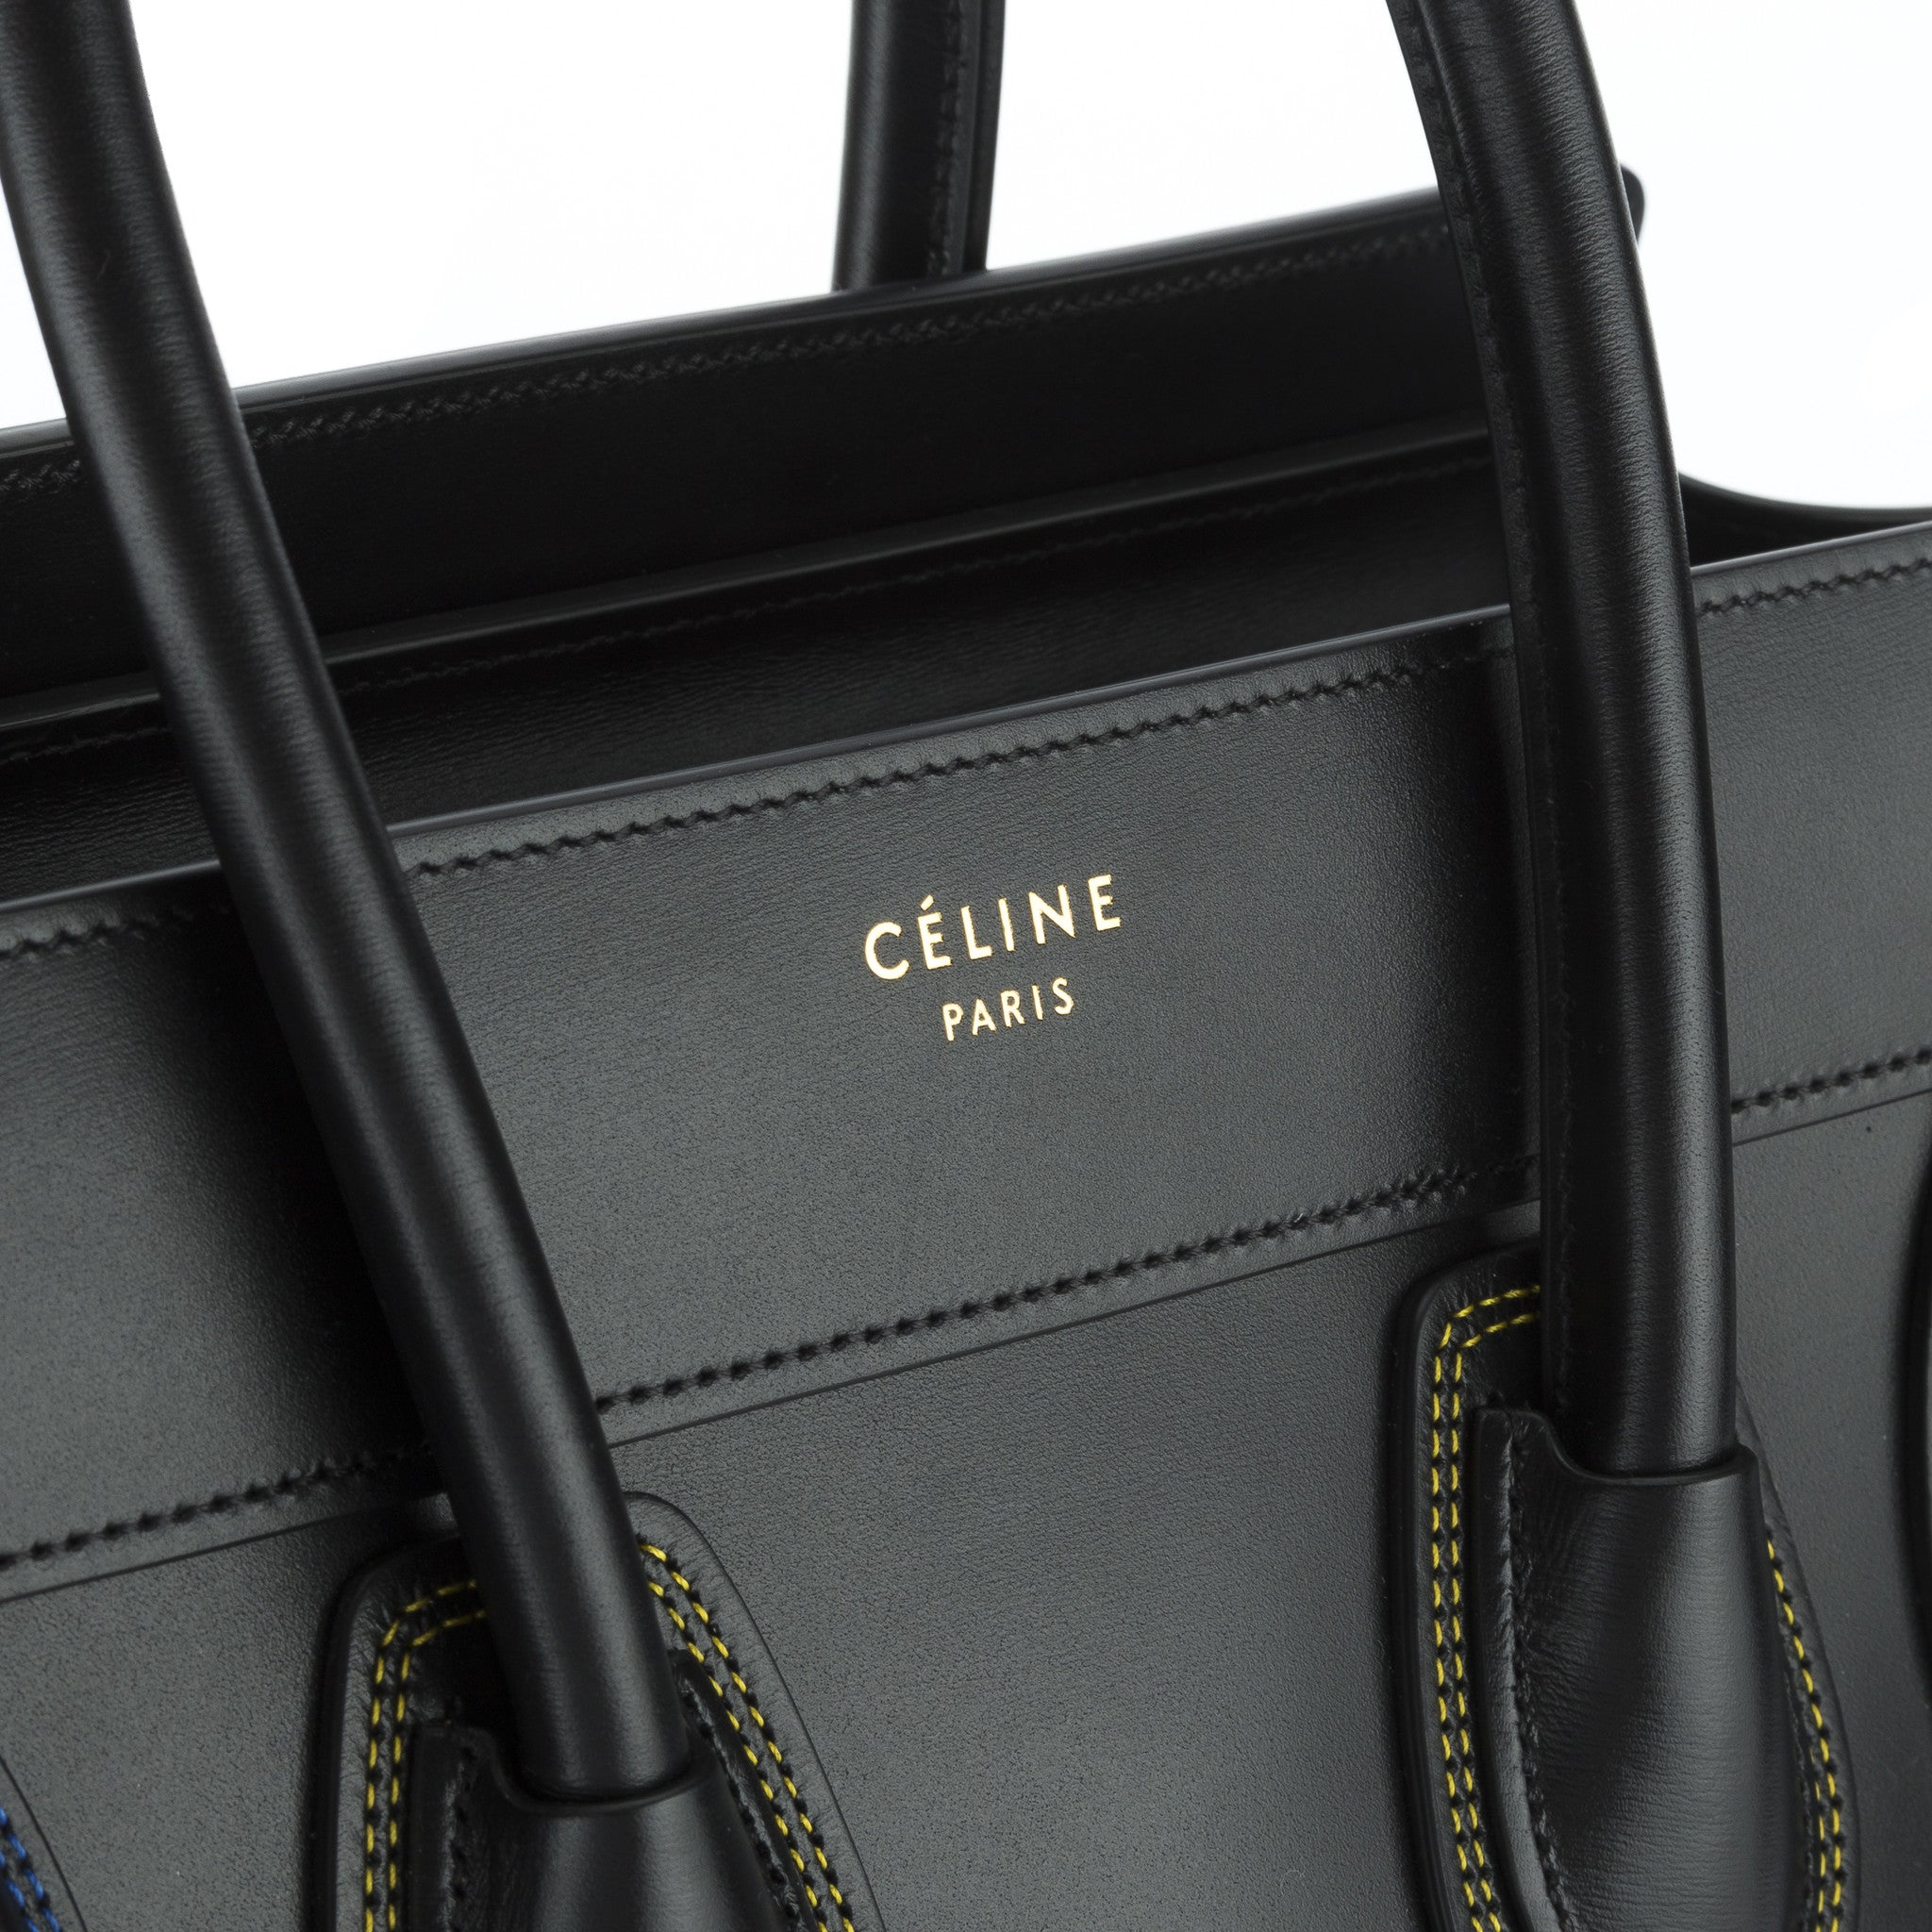 a61503264ae5 ... Celine Black Calfskin Multicolour Double Stitch Micro Luggage Handbag  (New with Tags). +  +  +  +  +  +  +  +  +  +. PrevNext